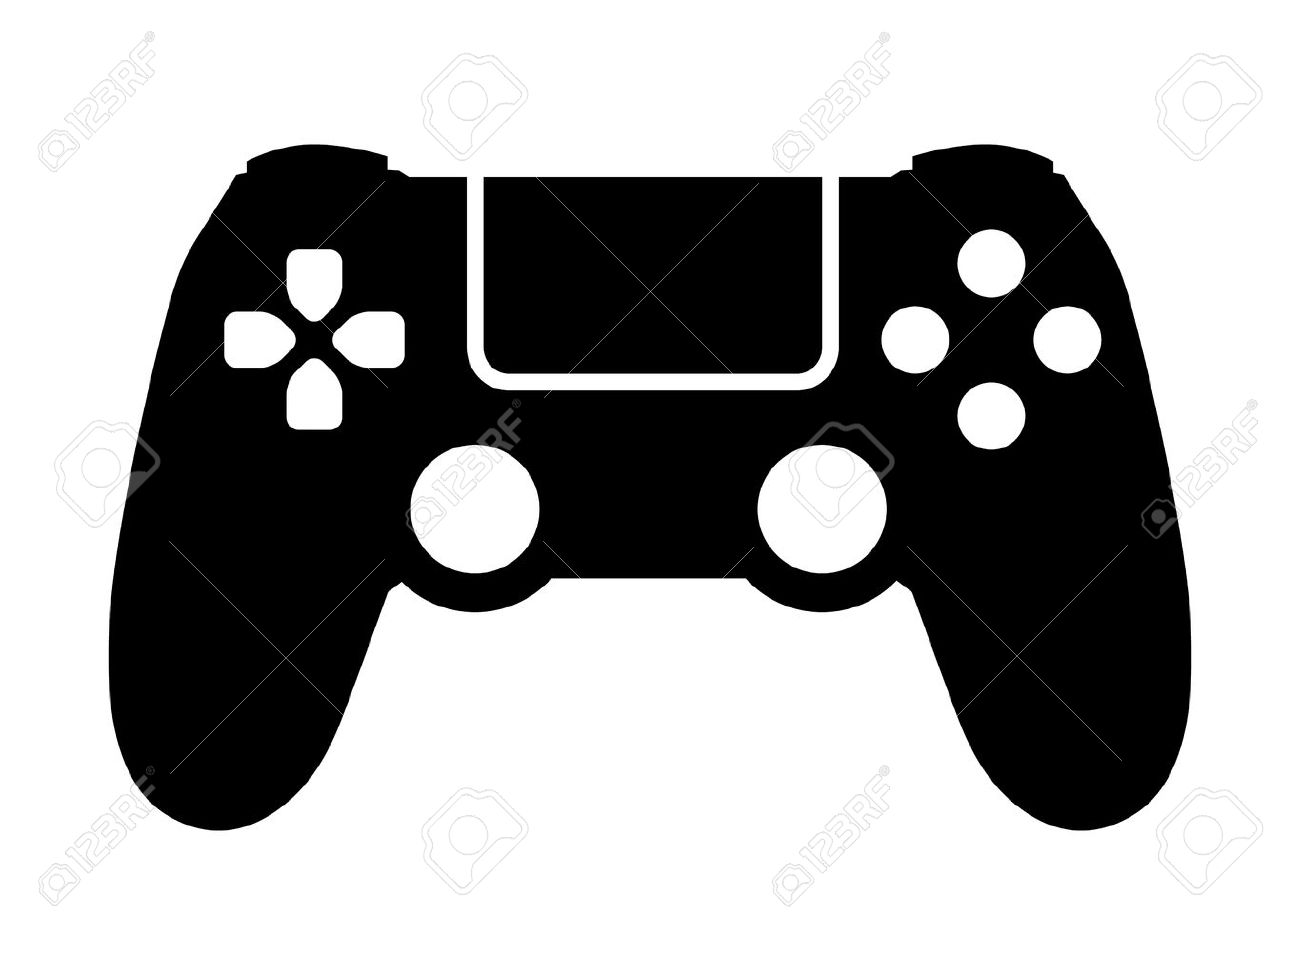 Video game controller / gamepad flat icon for apps and websites.